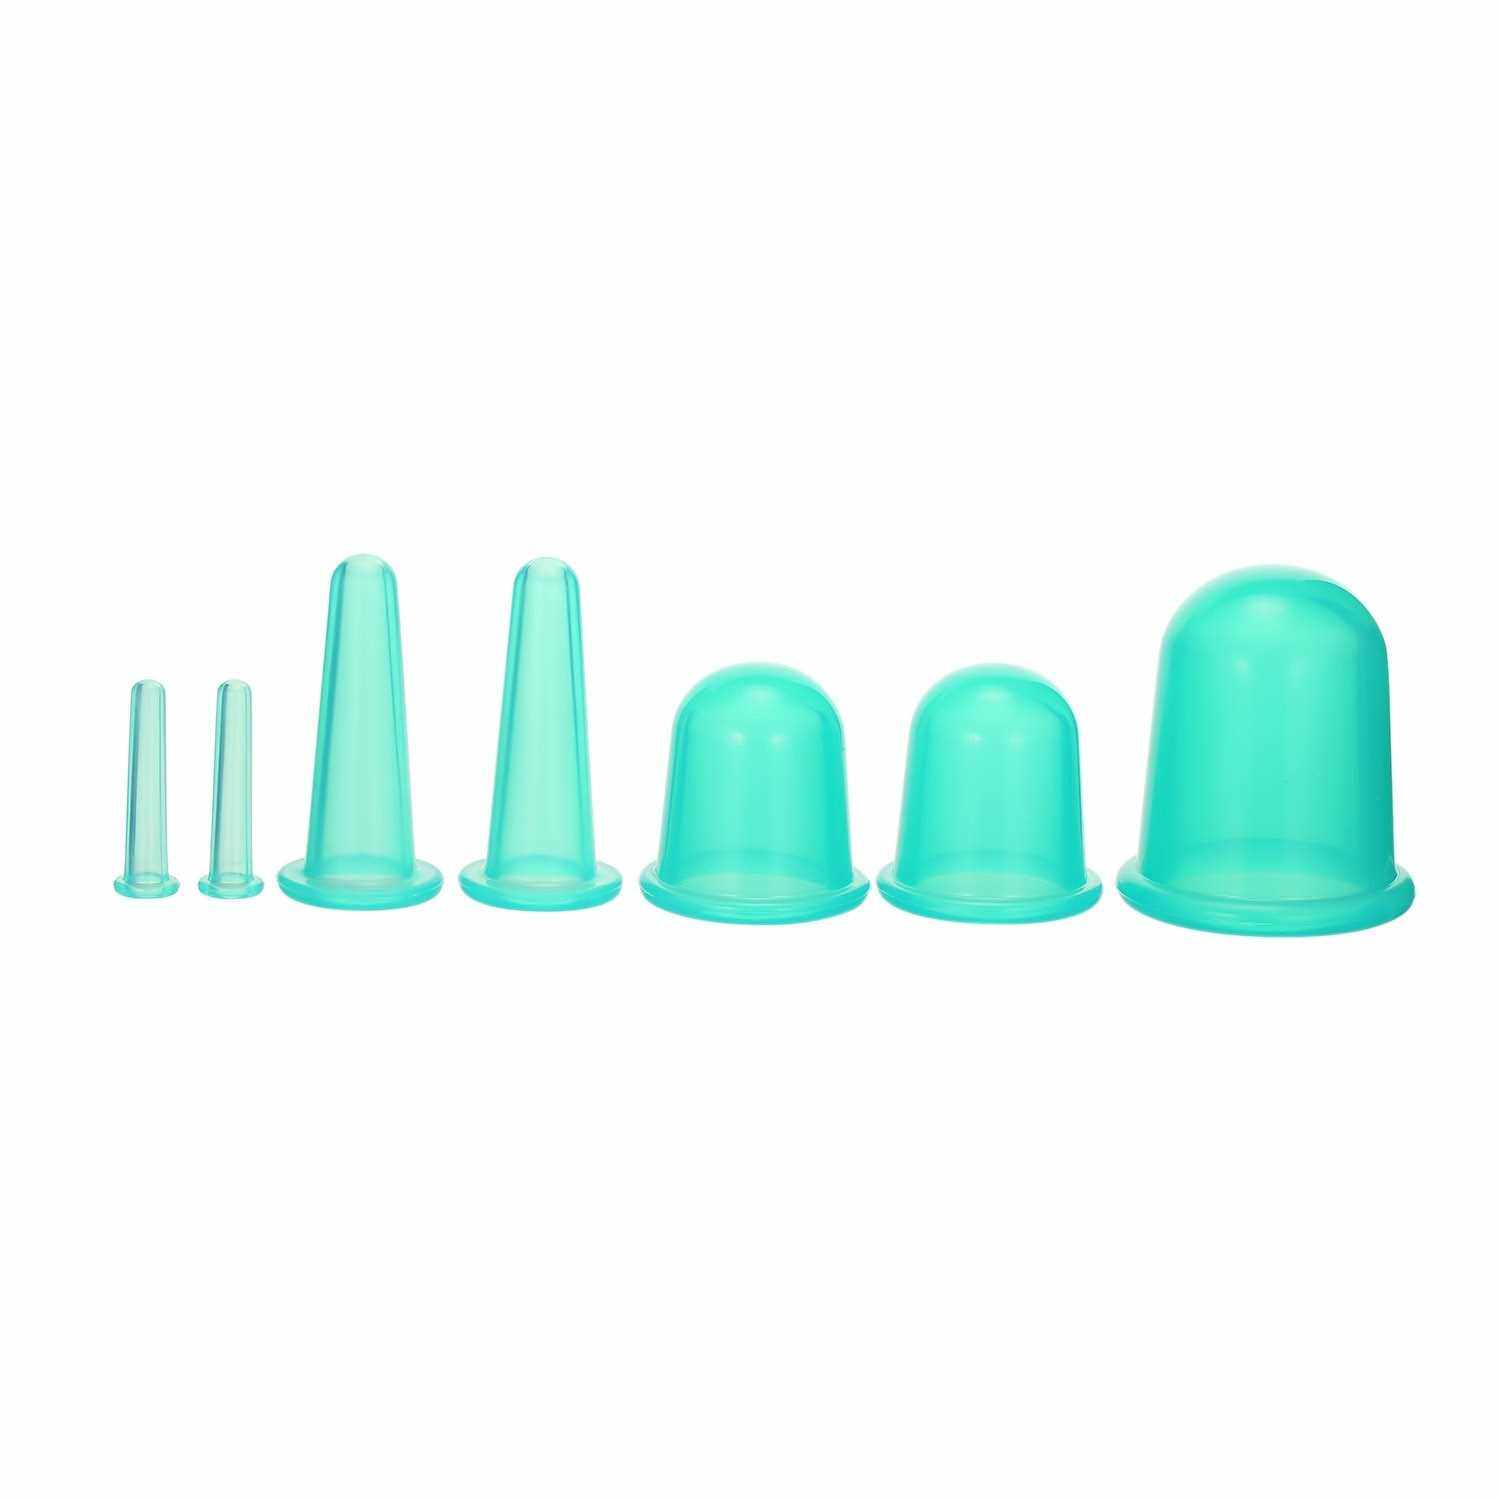 7pcs 4 sizes Silicone Massage Cup Facial Cupping Cup Vacuum Cupping Body Pain Relief Face Eye Care Treatment Manual Suction Cups (Green)